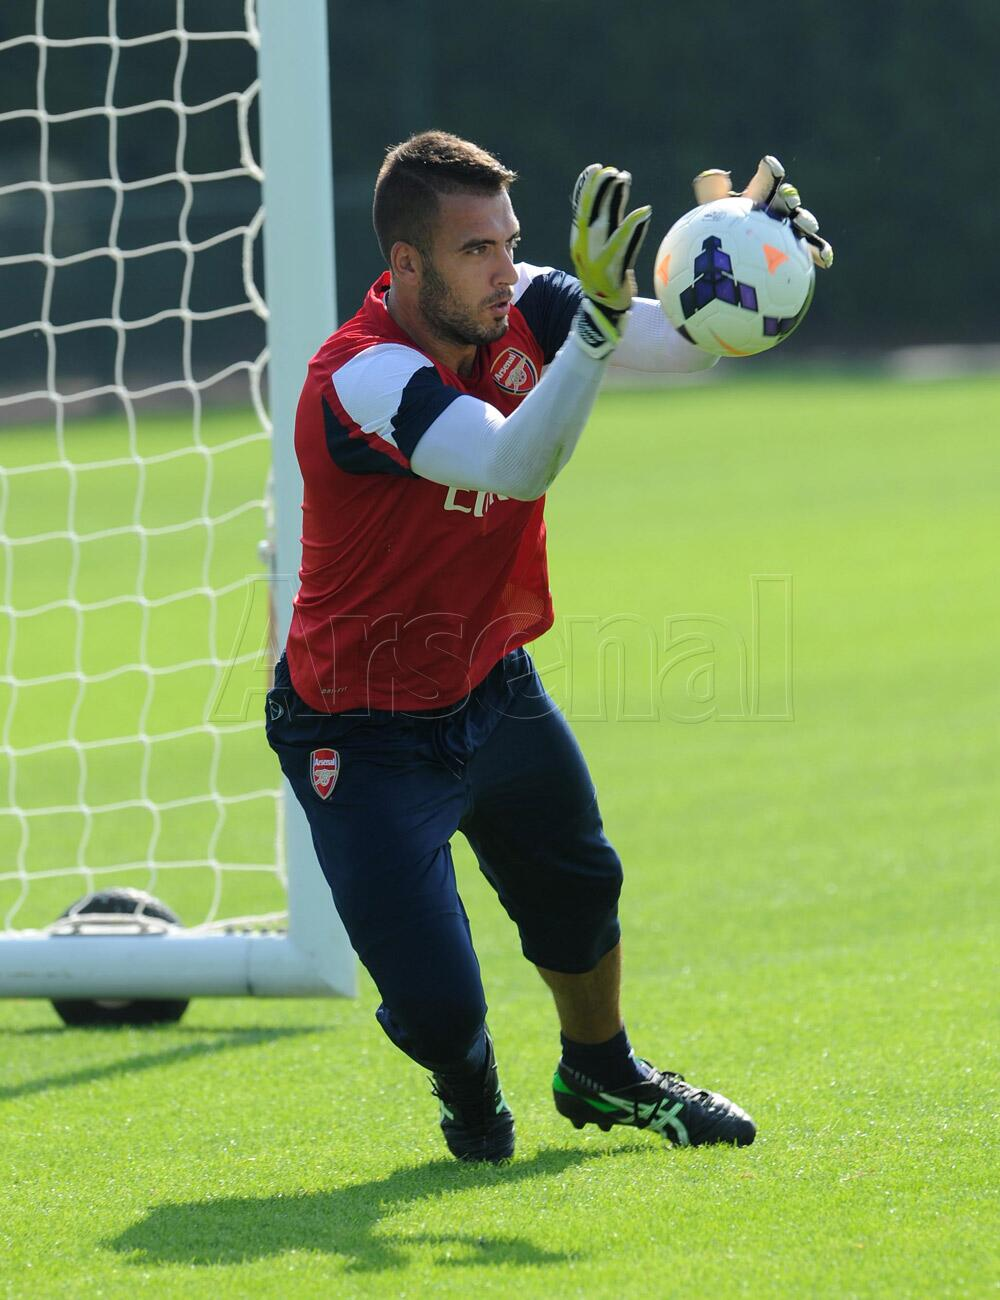 New signing @EmilianoViviano has completed his first week of training. Here's the keeper in action #WelcomeViviano http://t.co/6eruwLEBom